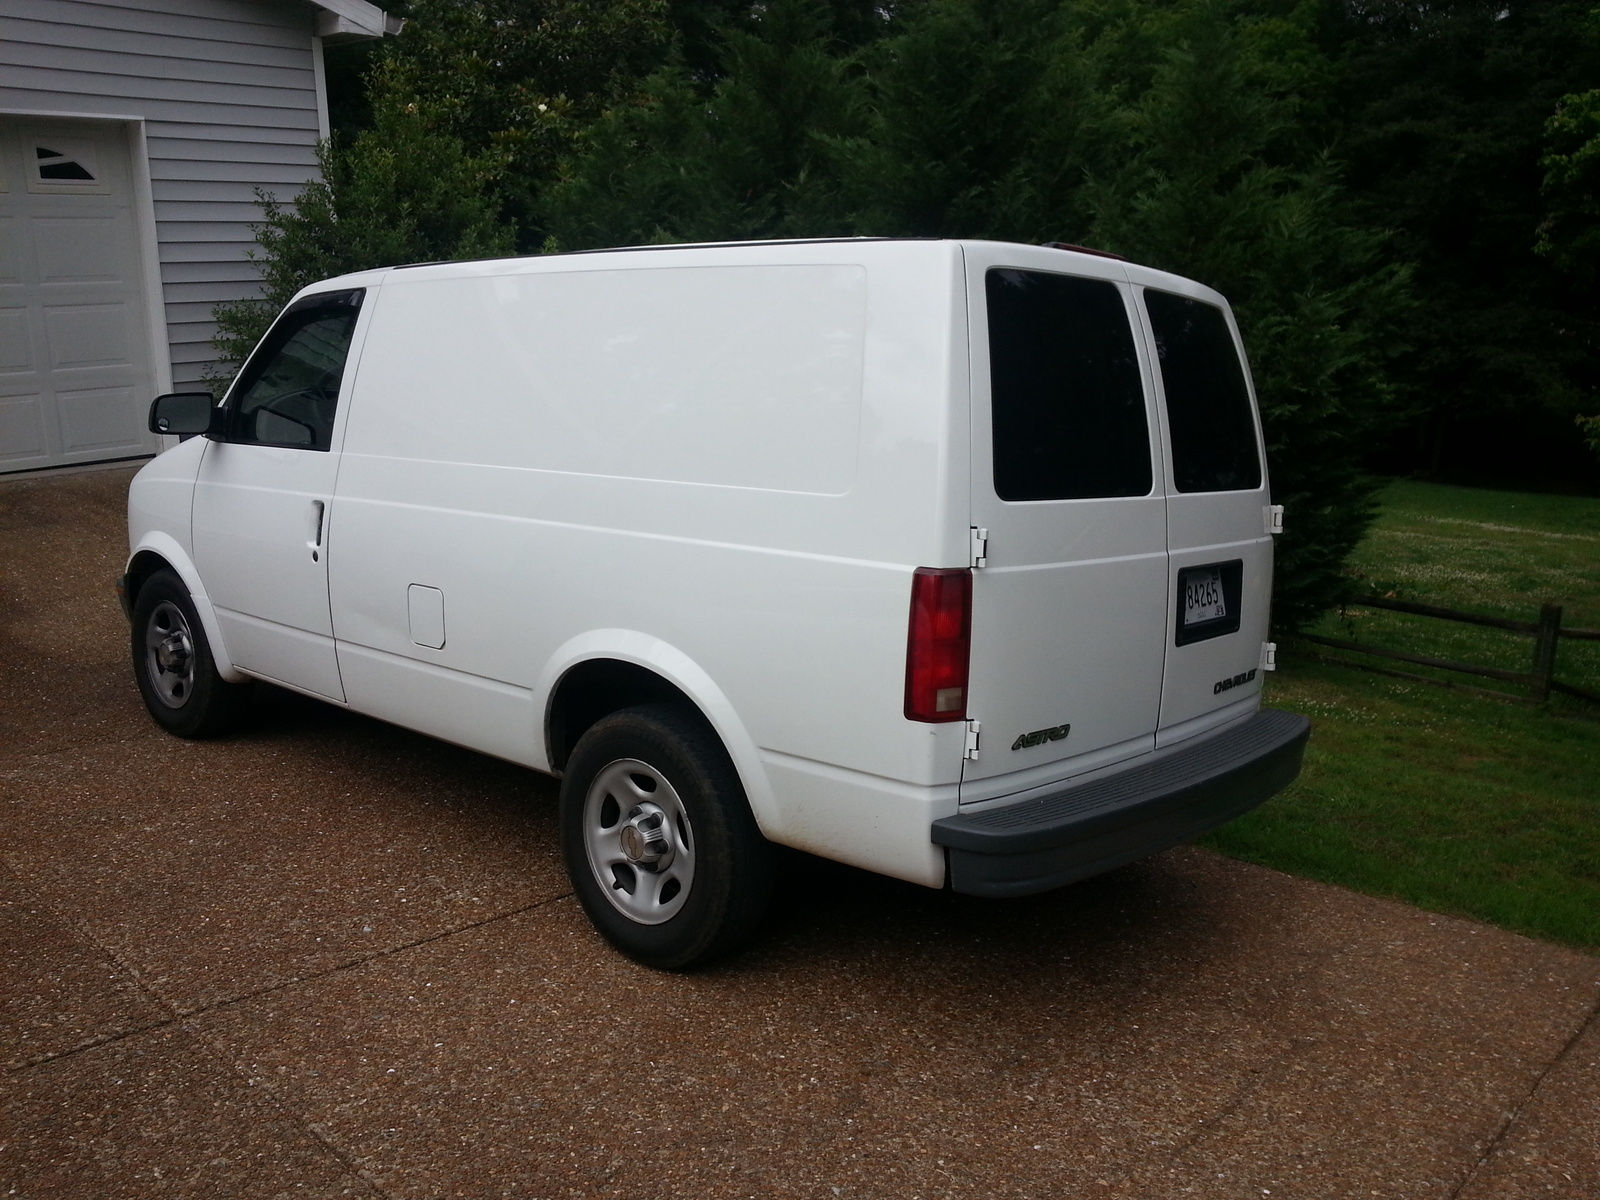 2003 chevrolet astro cargo van pictures cargurus. Black Bedroom Furniture Sets. Home Design Ideas